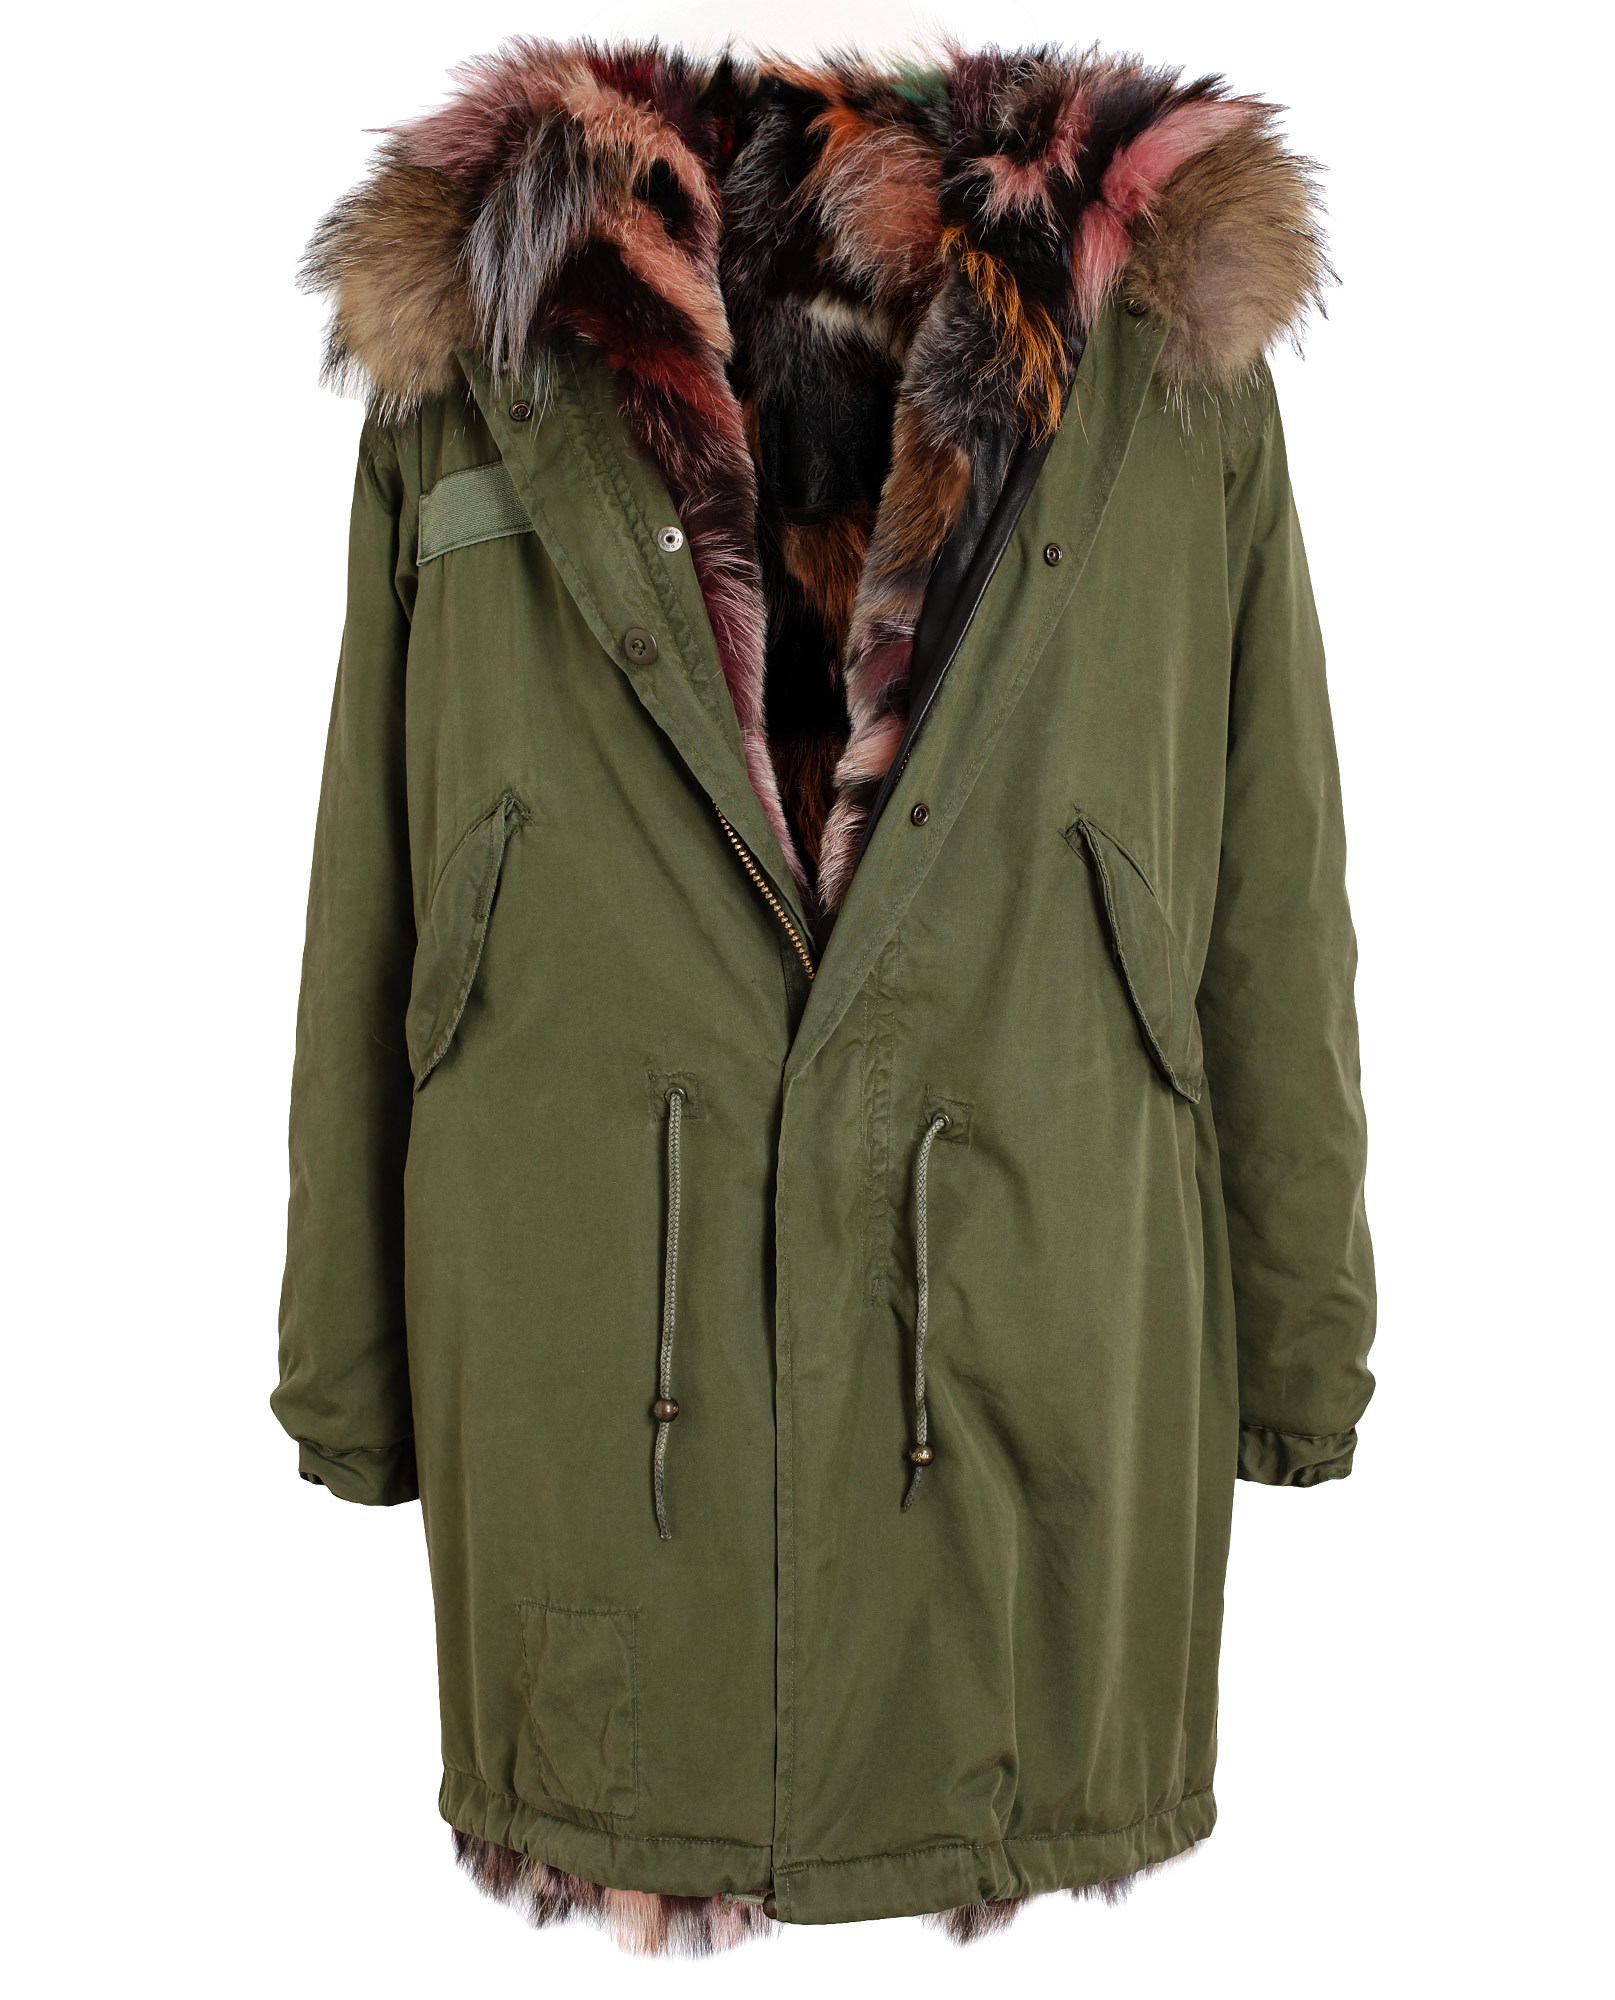 Mr & Mrs Furs  Fully Lined Parka